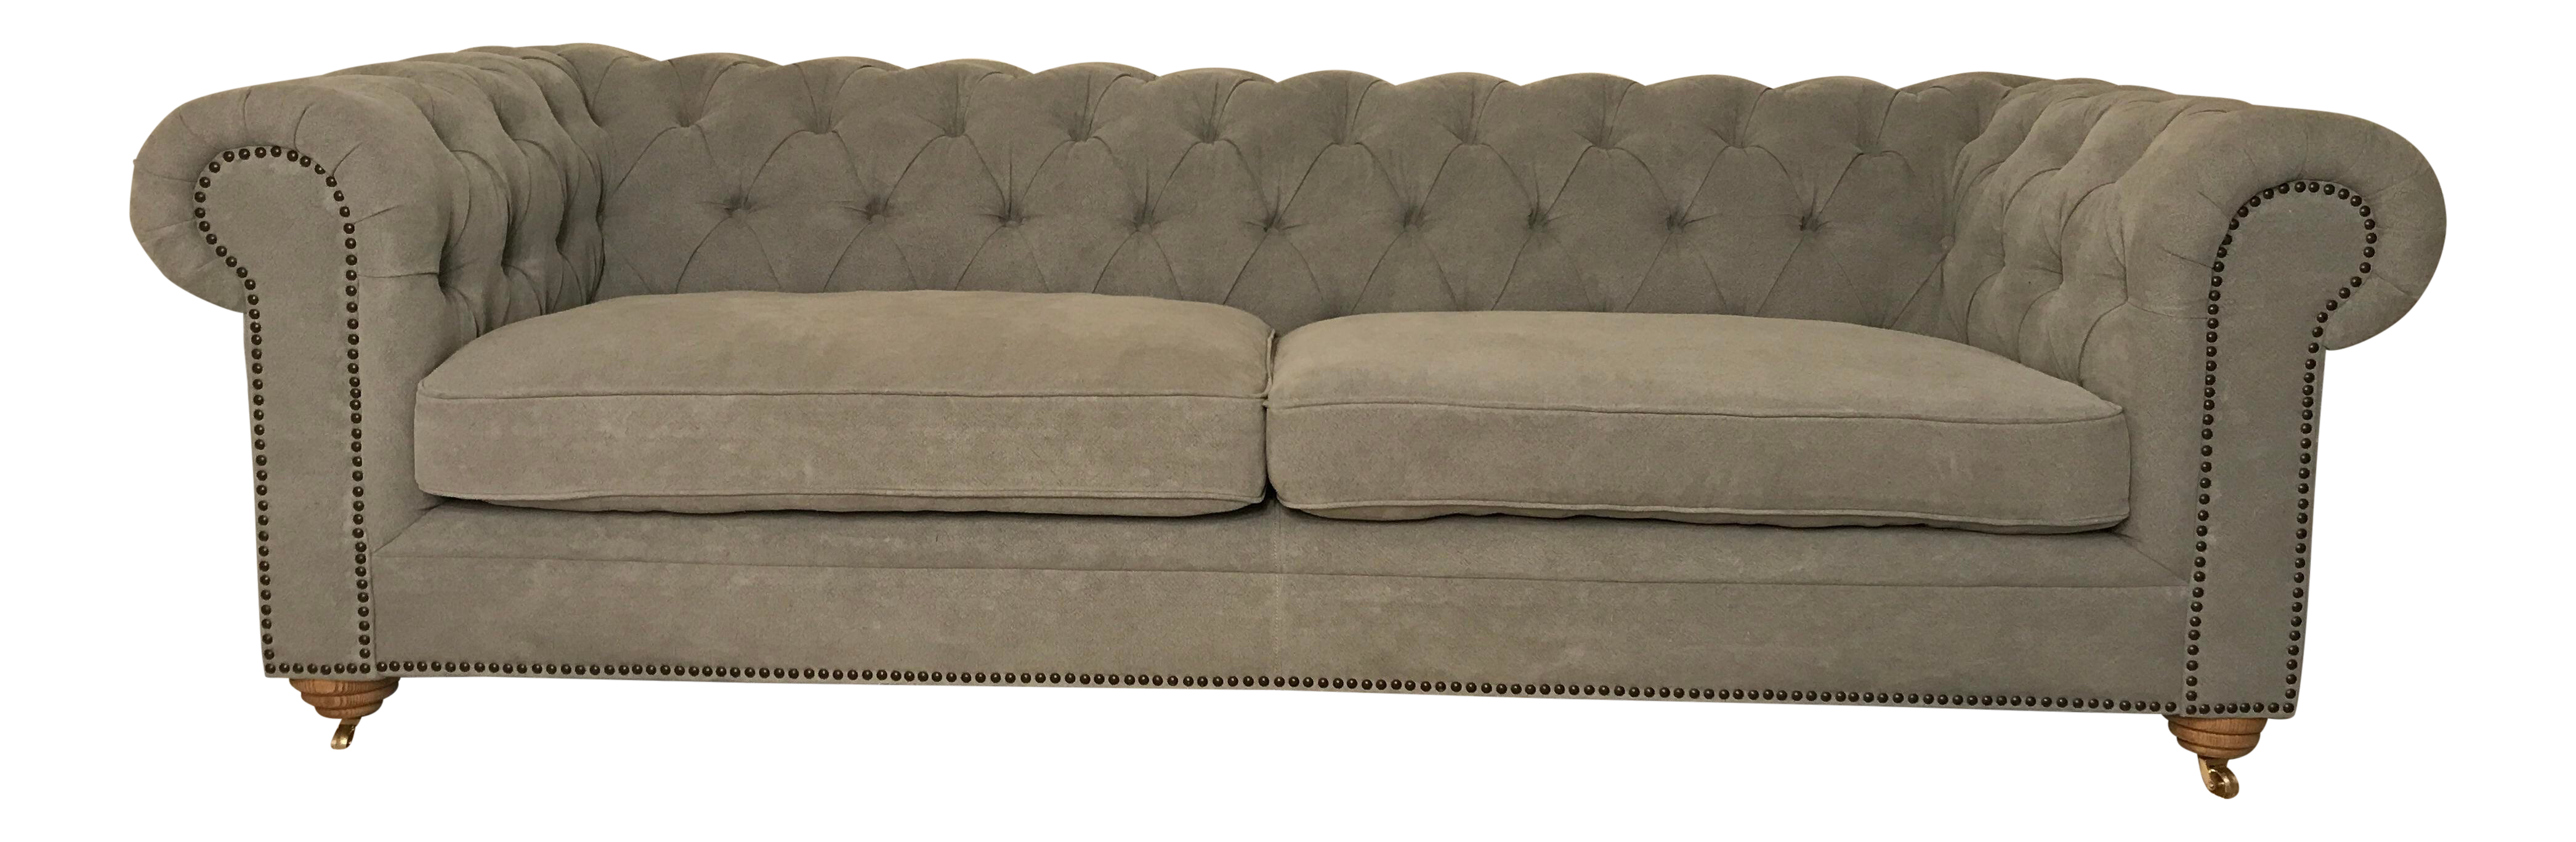 Modern Gray Washed Linen Chesterfield Style Sofa Chairish